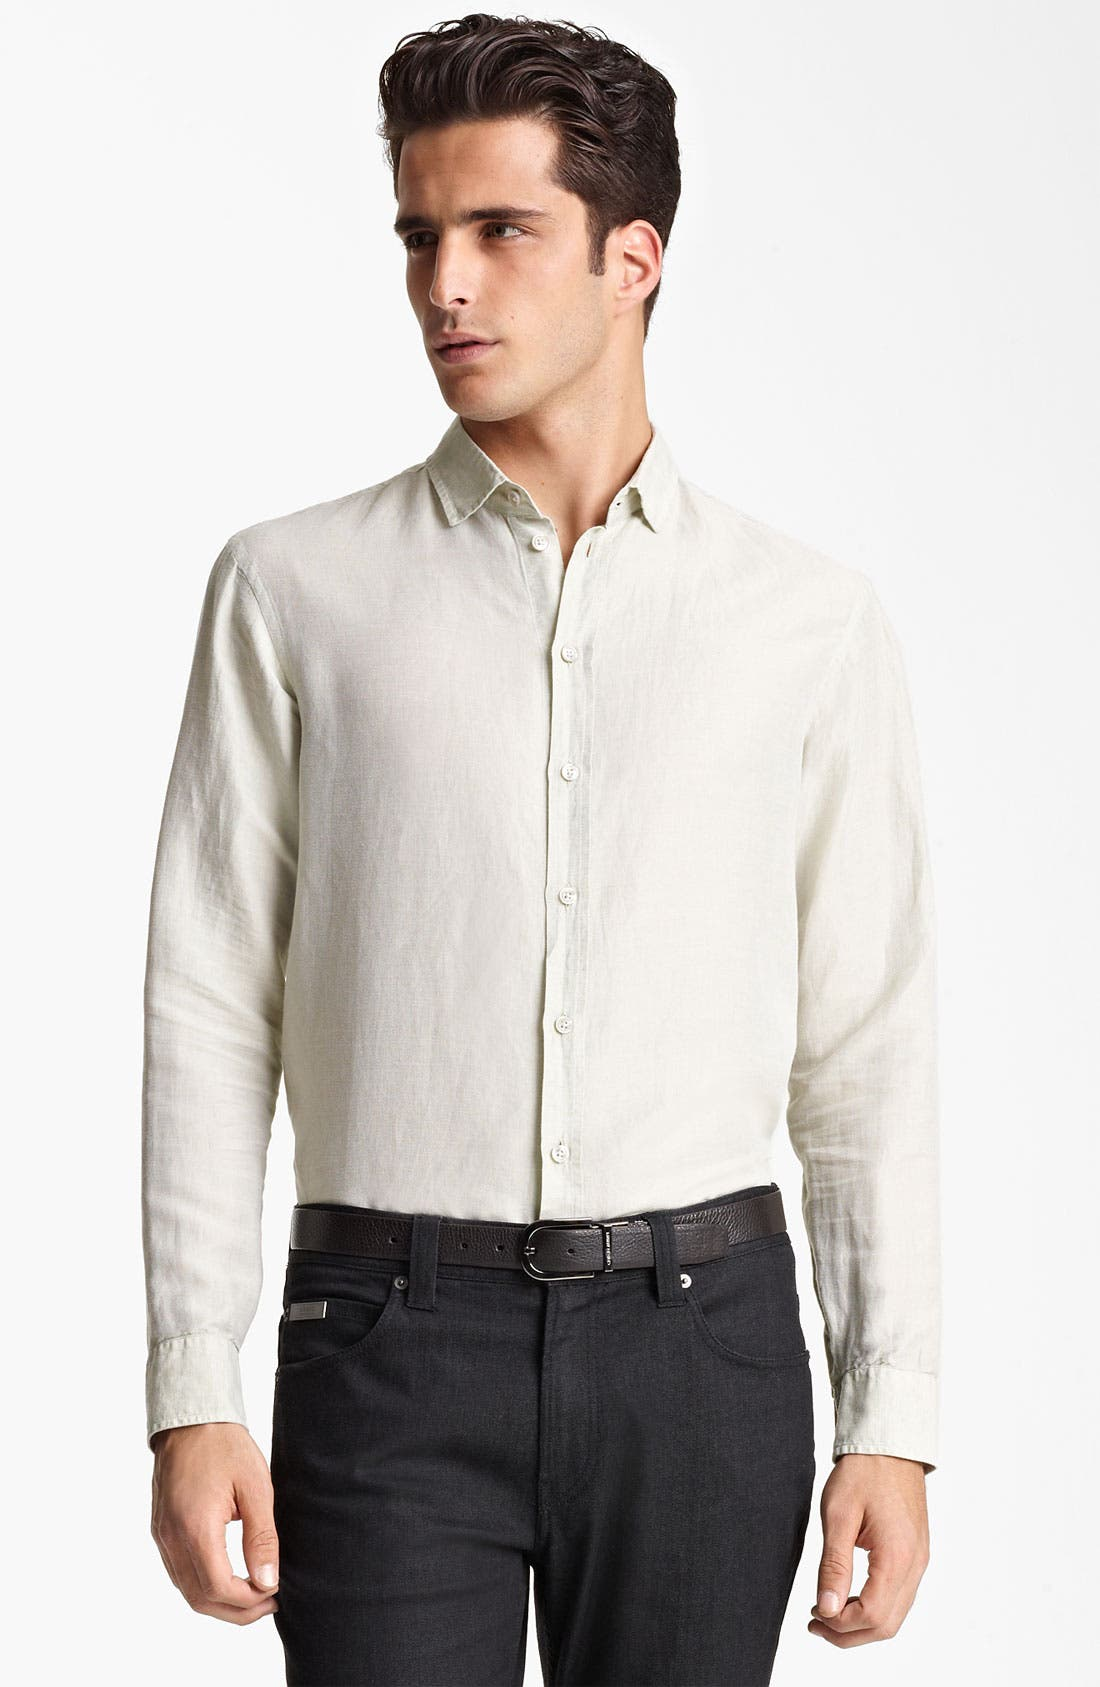 Alternate Image 1 Selected - Armani Collezioni Linen & Cotton Sport Shirt